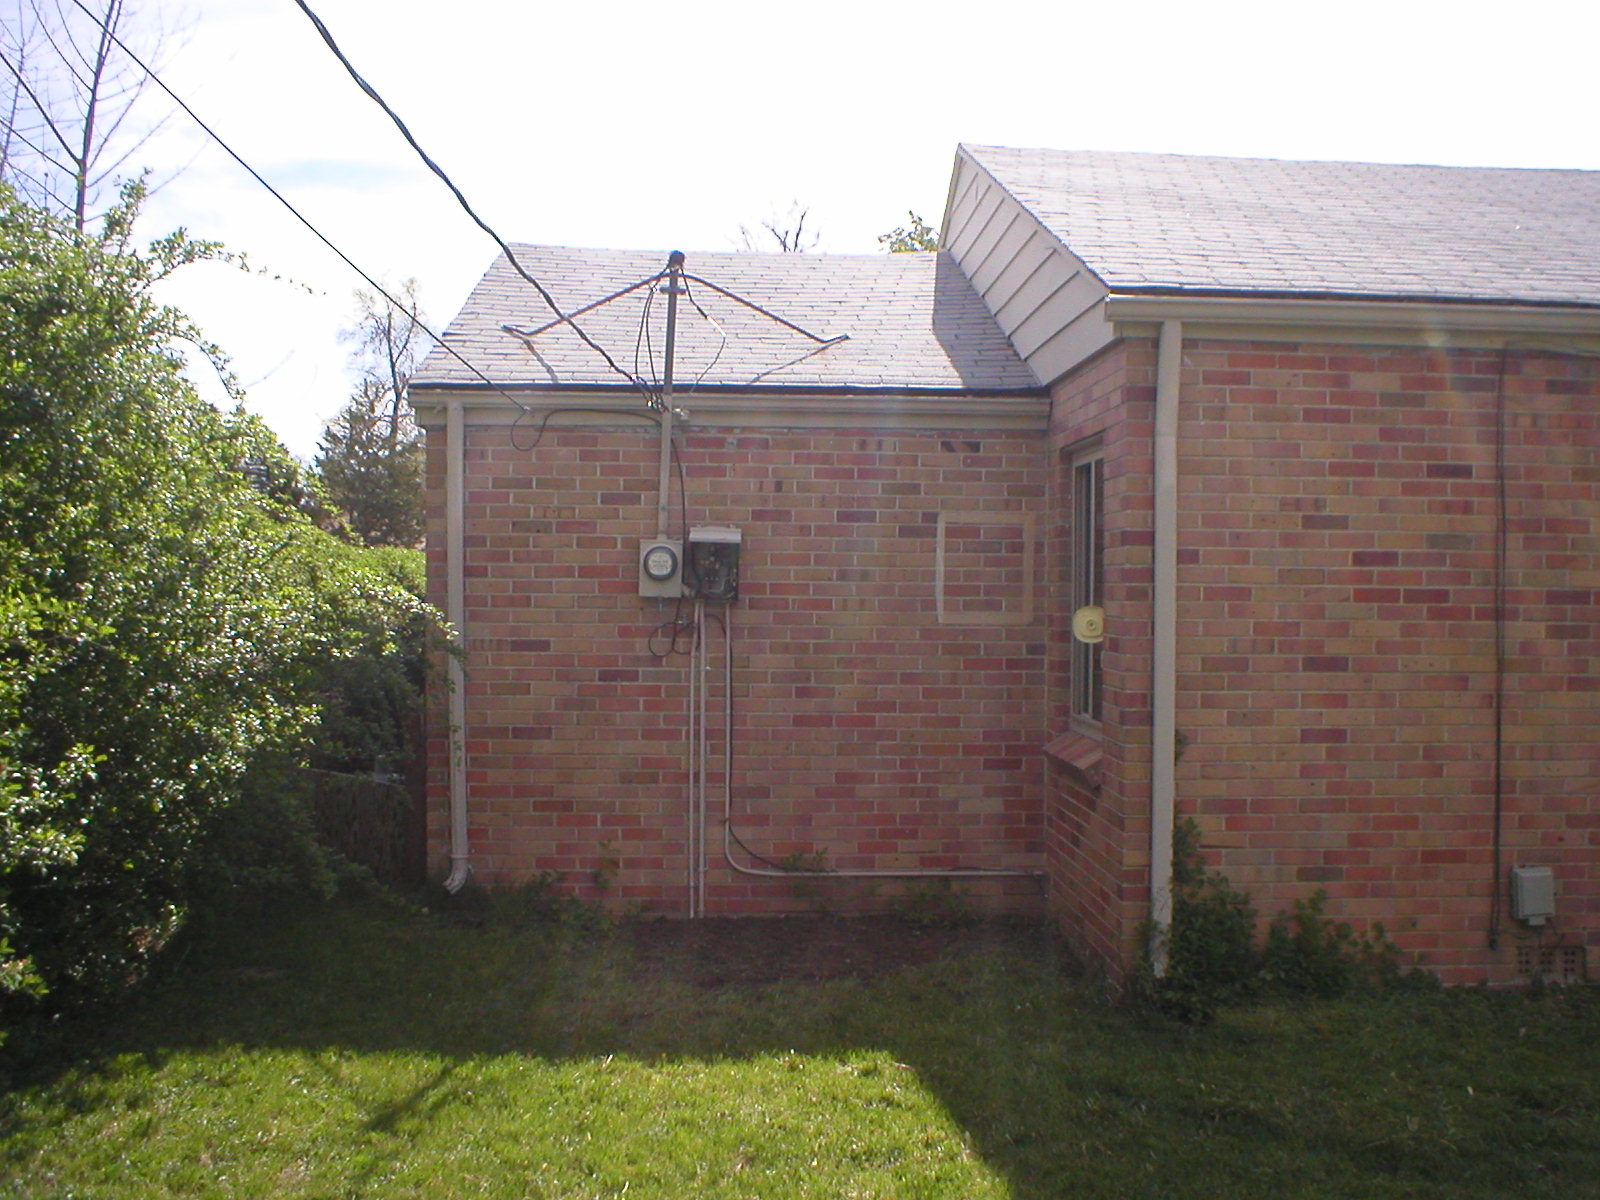 Original Exterior Electrical Service